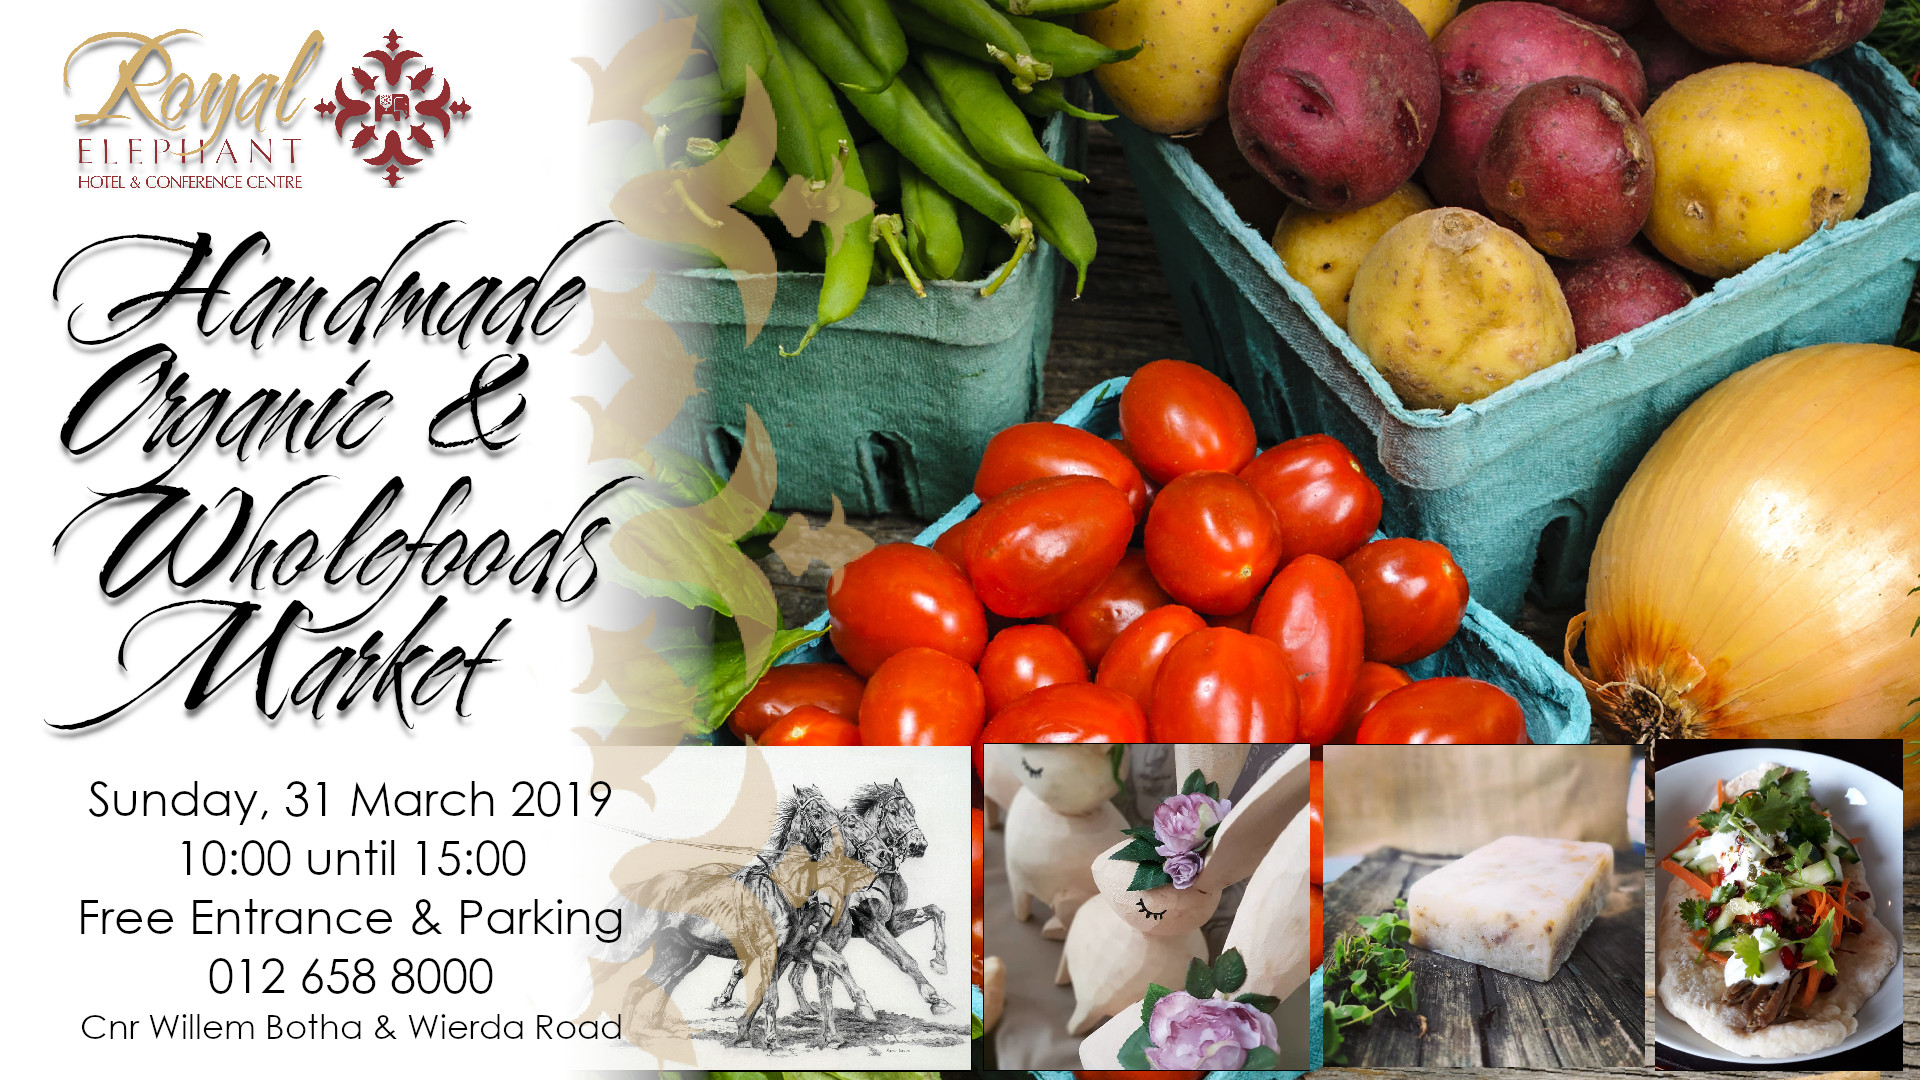 Handmade, Organic & Whole foods Market – 31 March 2019